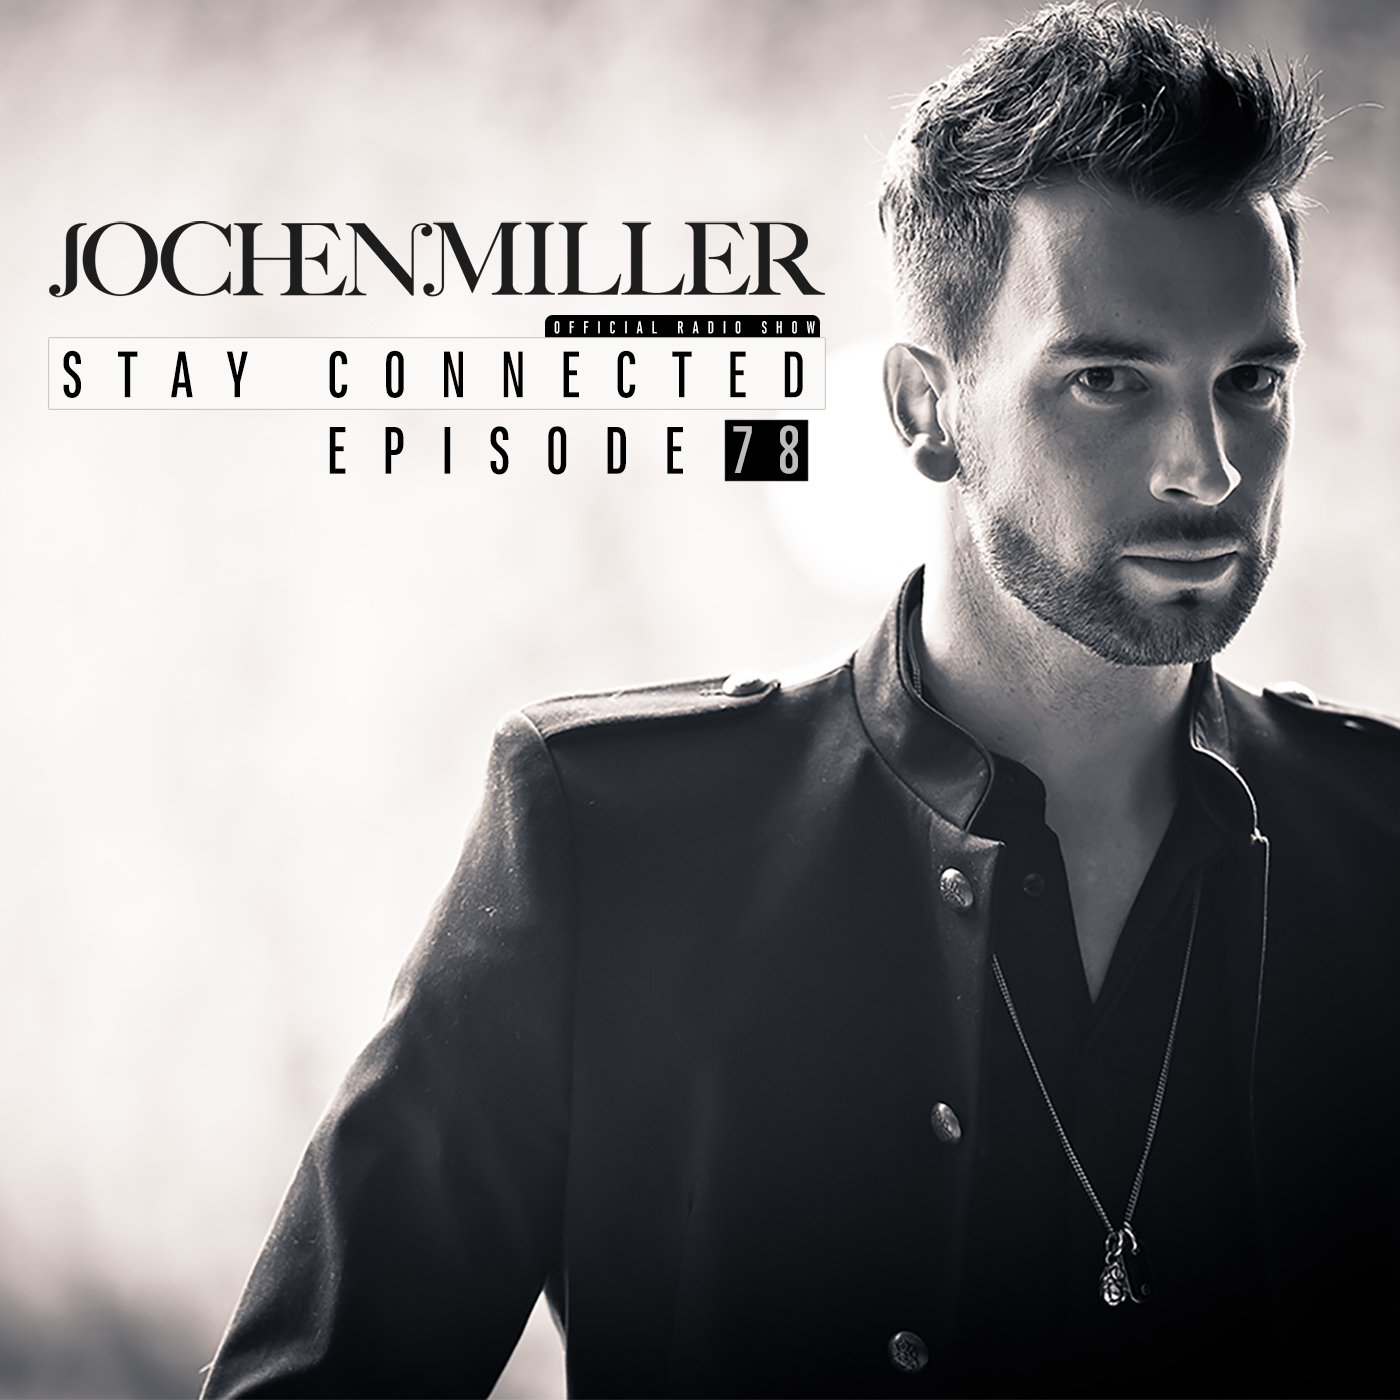 Stay Connected Podcast Episode 78 By Jochen Miller